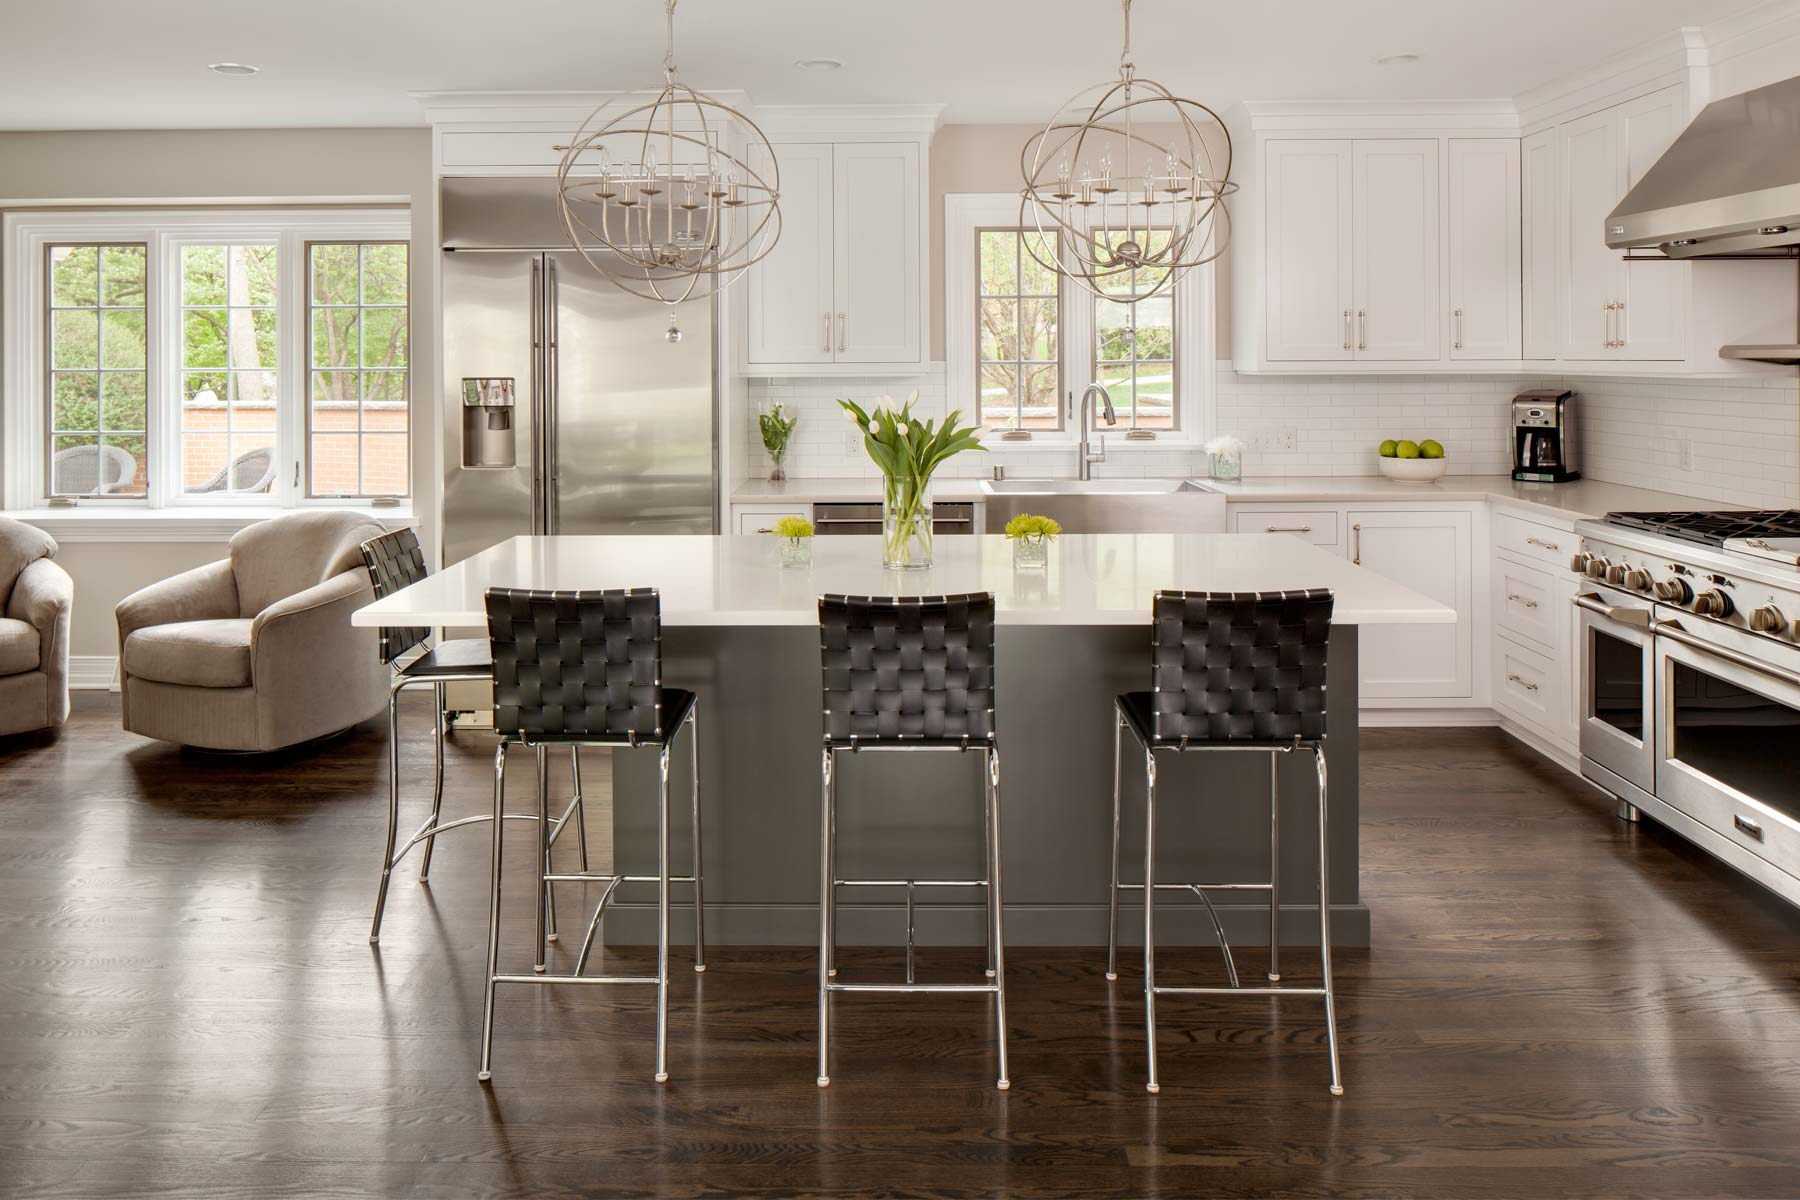 kitchen remodel pictures stuff on sale sazama home remodeling improvement additions milwaukee with